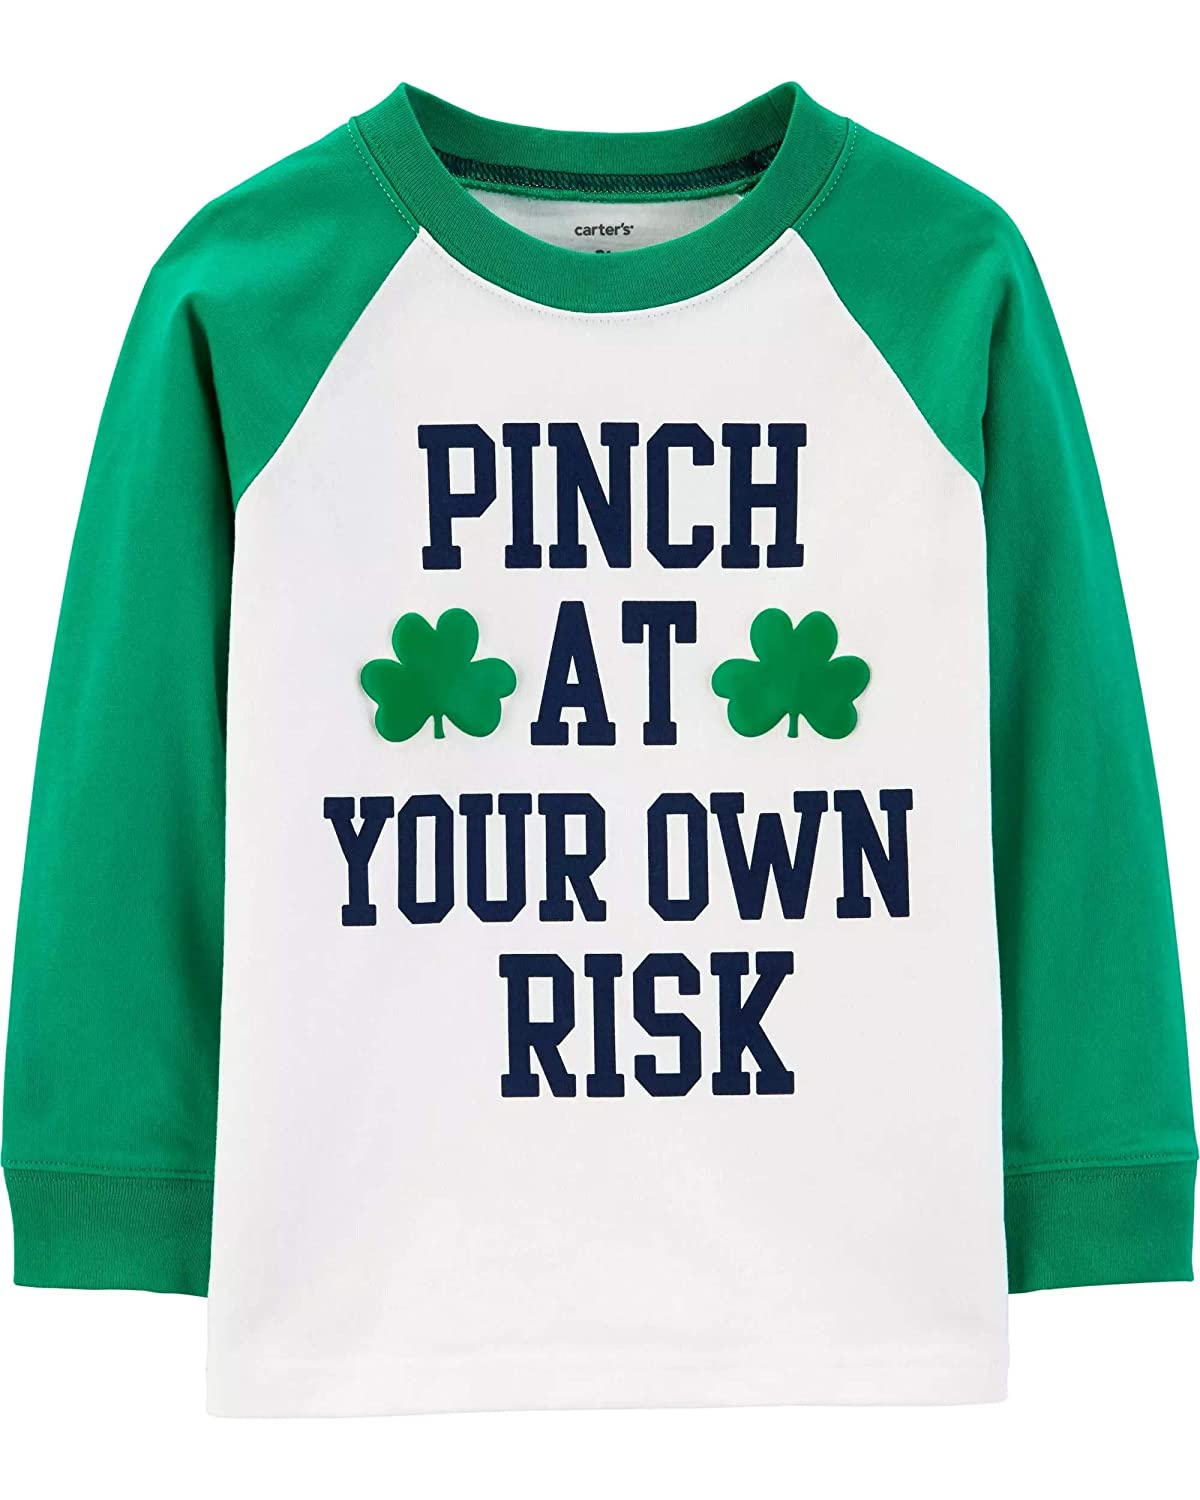 Carters Boys St Patricks Day Graphic Tee